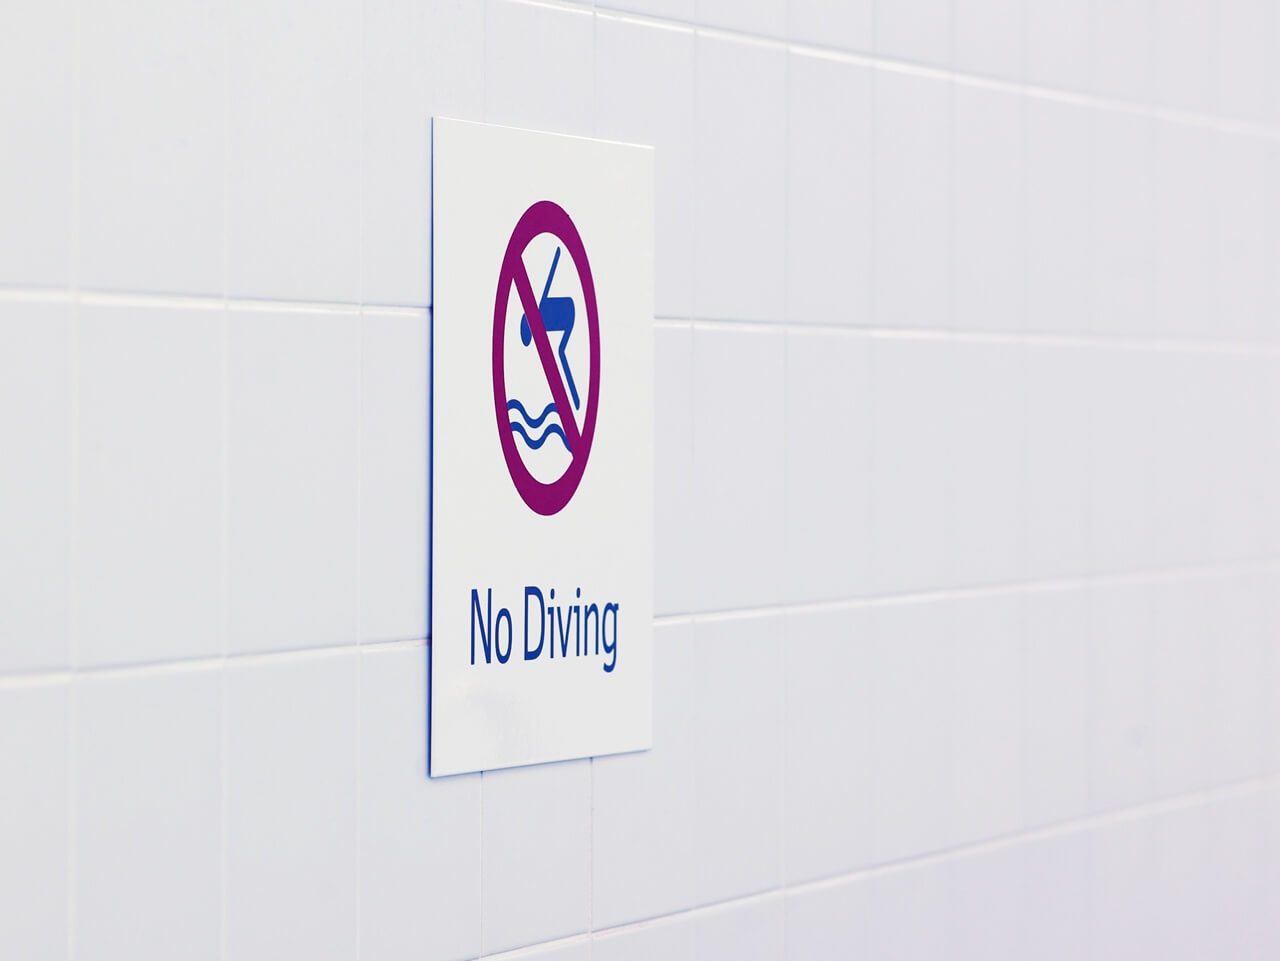 Wayfinding and signage in pool areas indicates no diving, using robust chlorine-proof materials